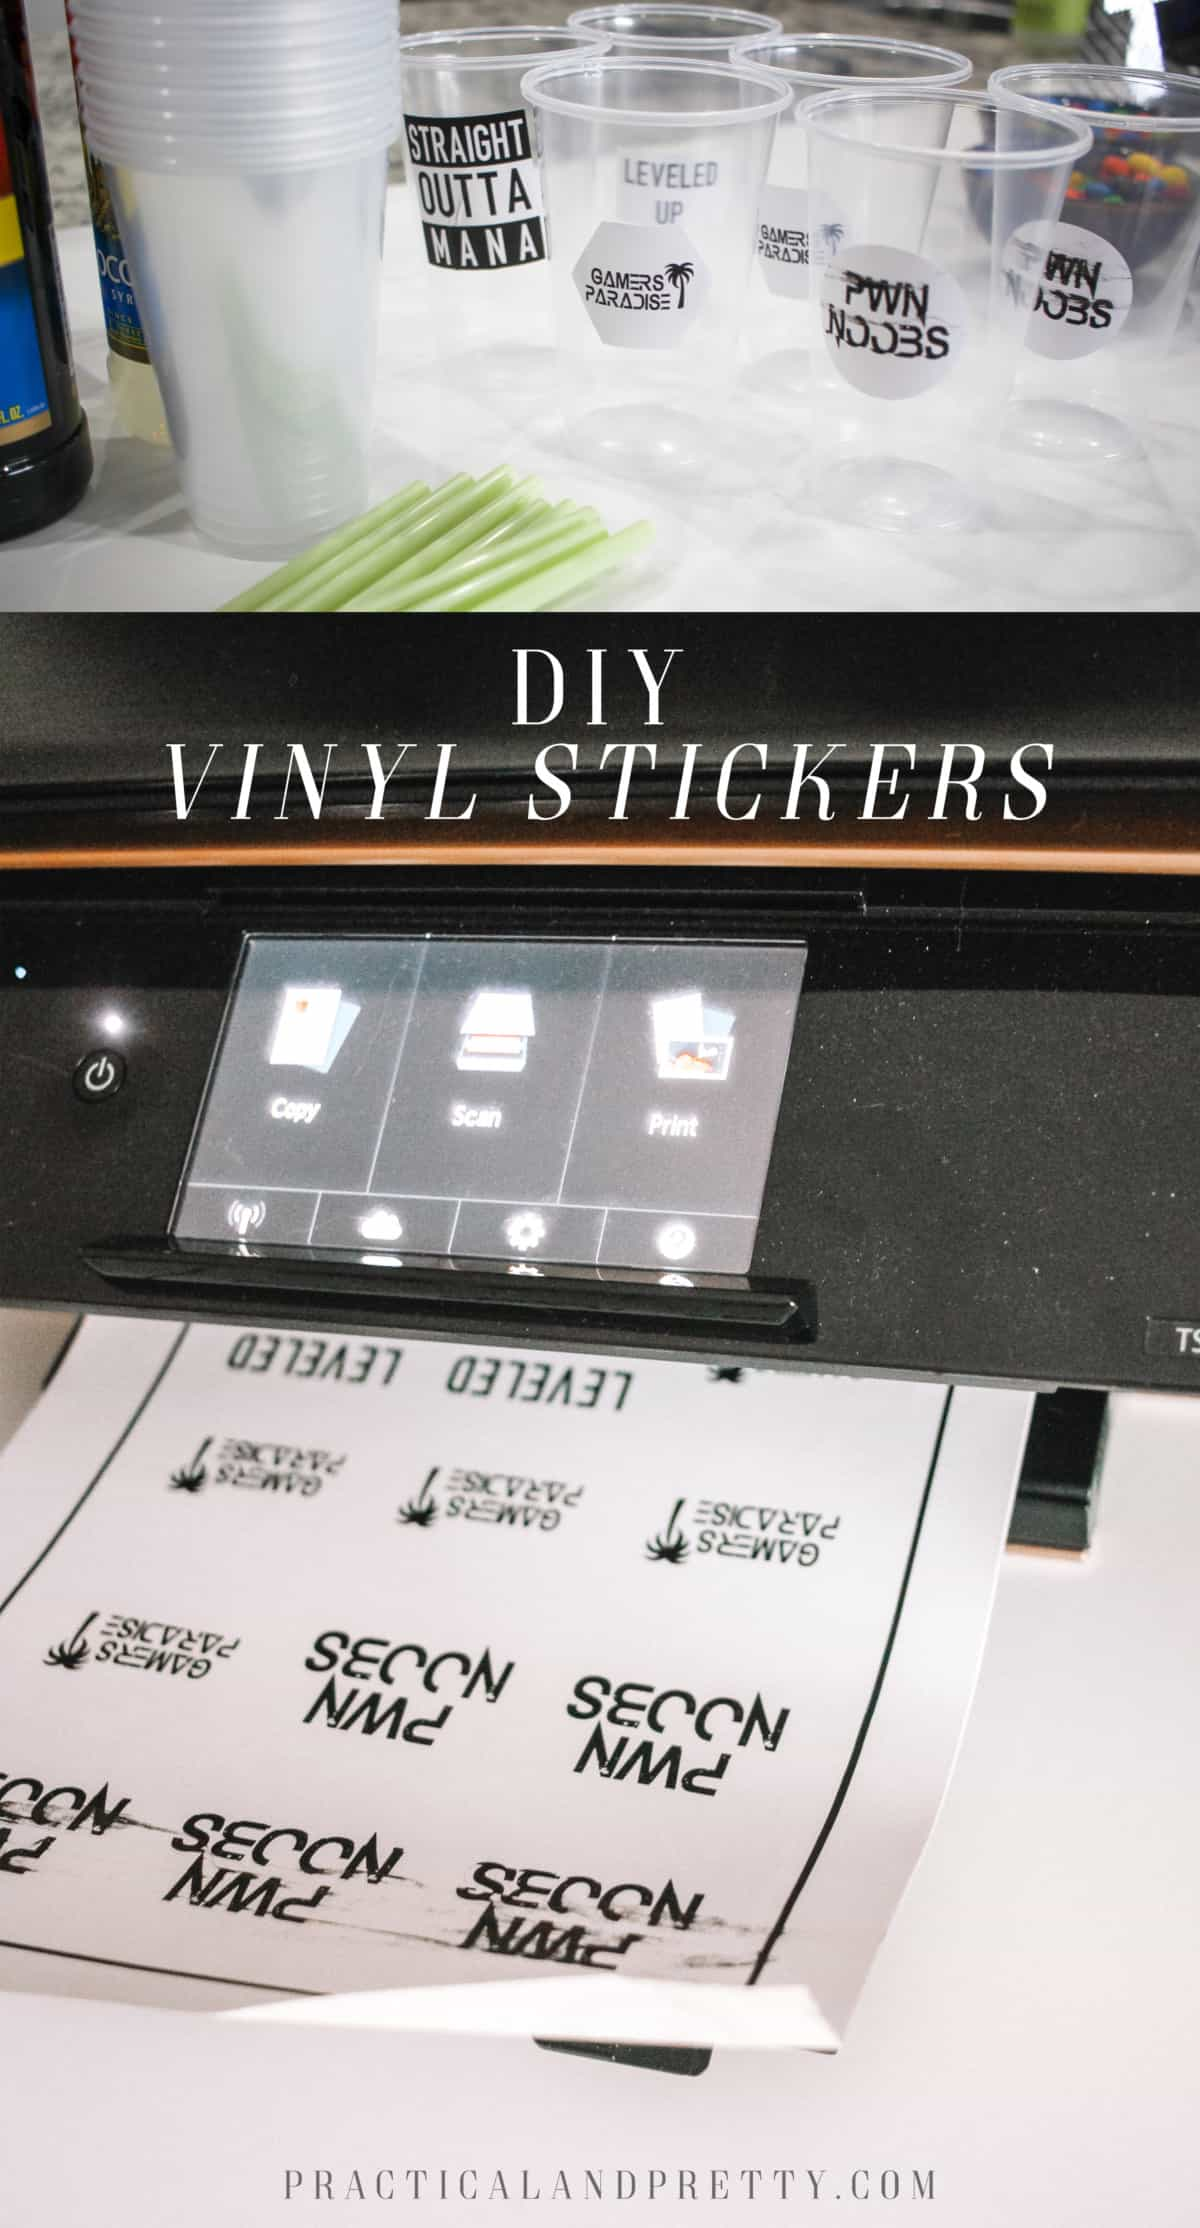 Making custom stickers is really simple with printable vinyl and ill walk you through